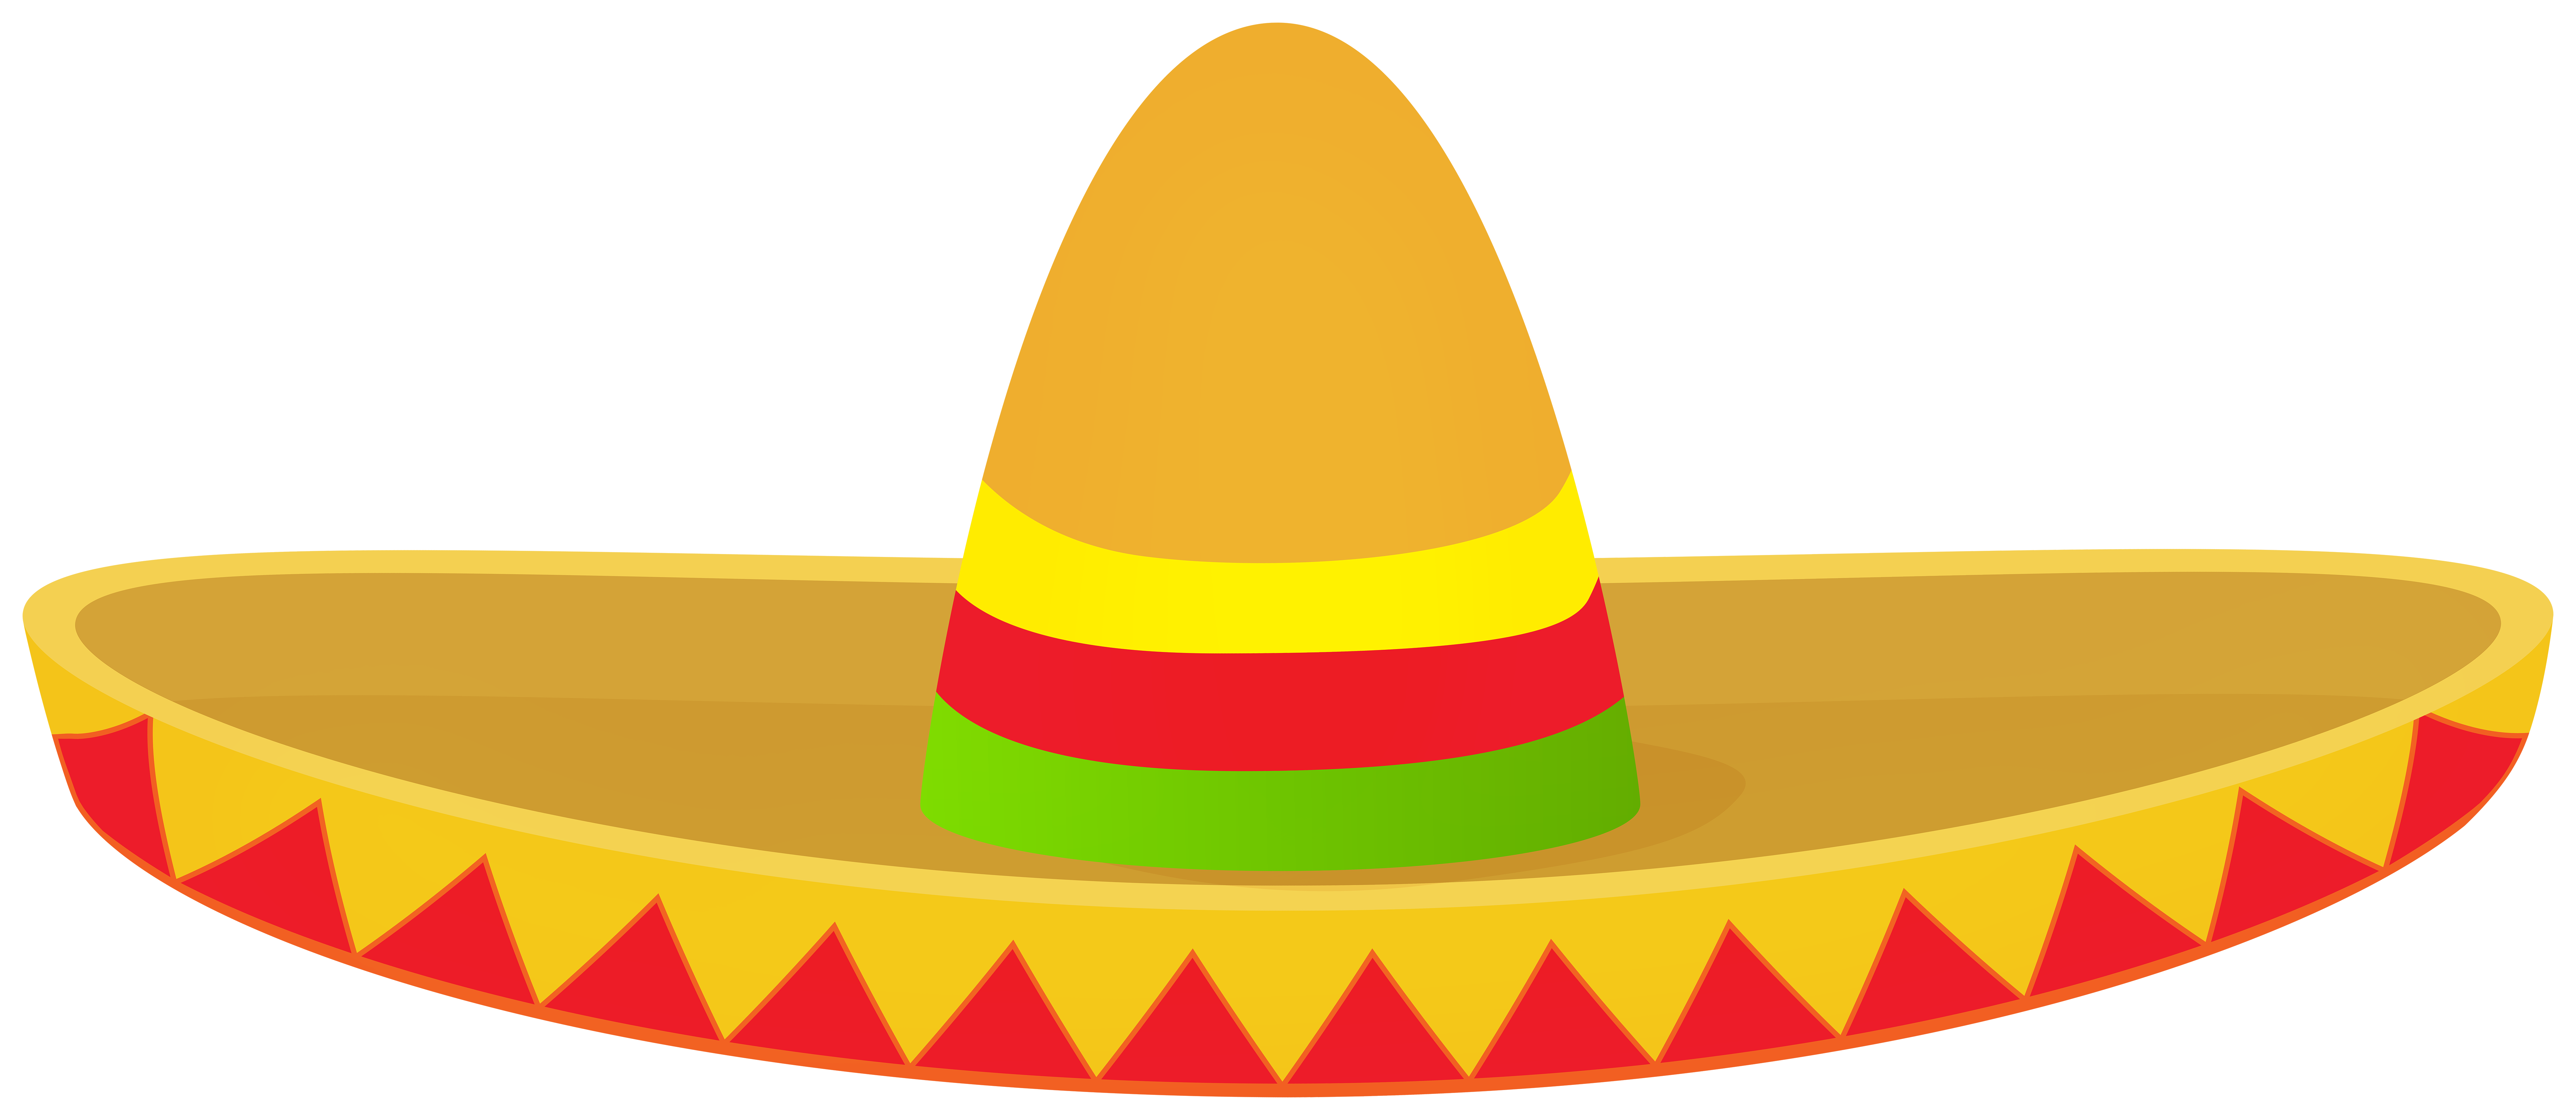 Sombrero clipart png freeuse Sombrero PNG Clipart | Gallery Yopriceville - High-Quality ... freeuse